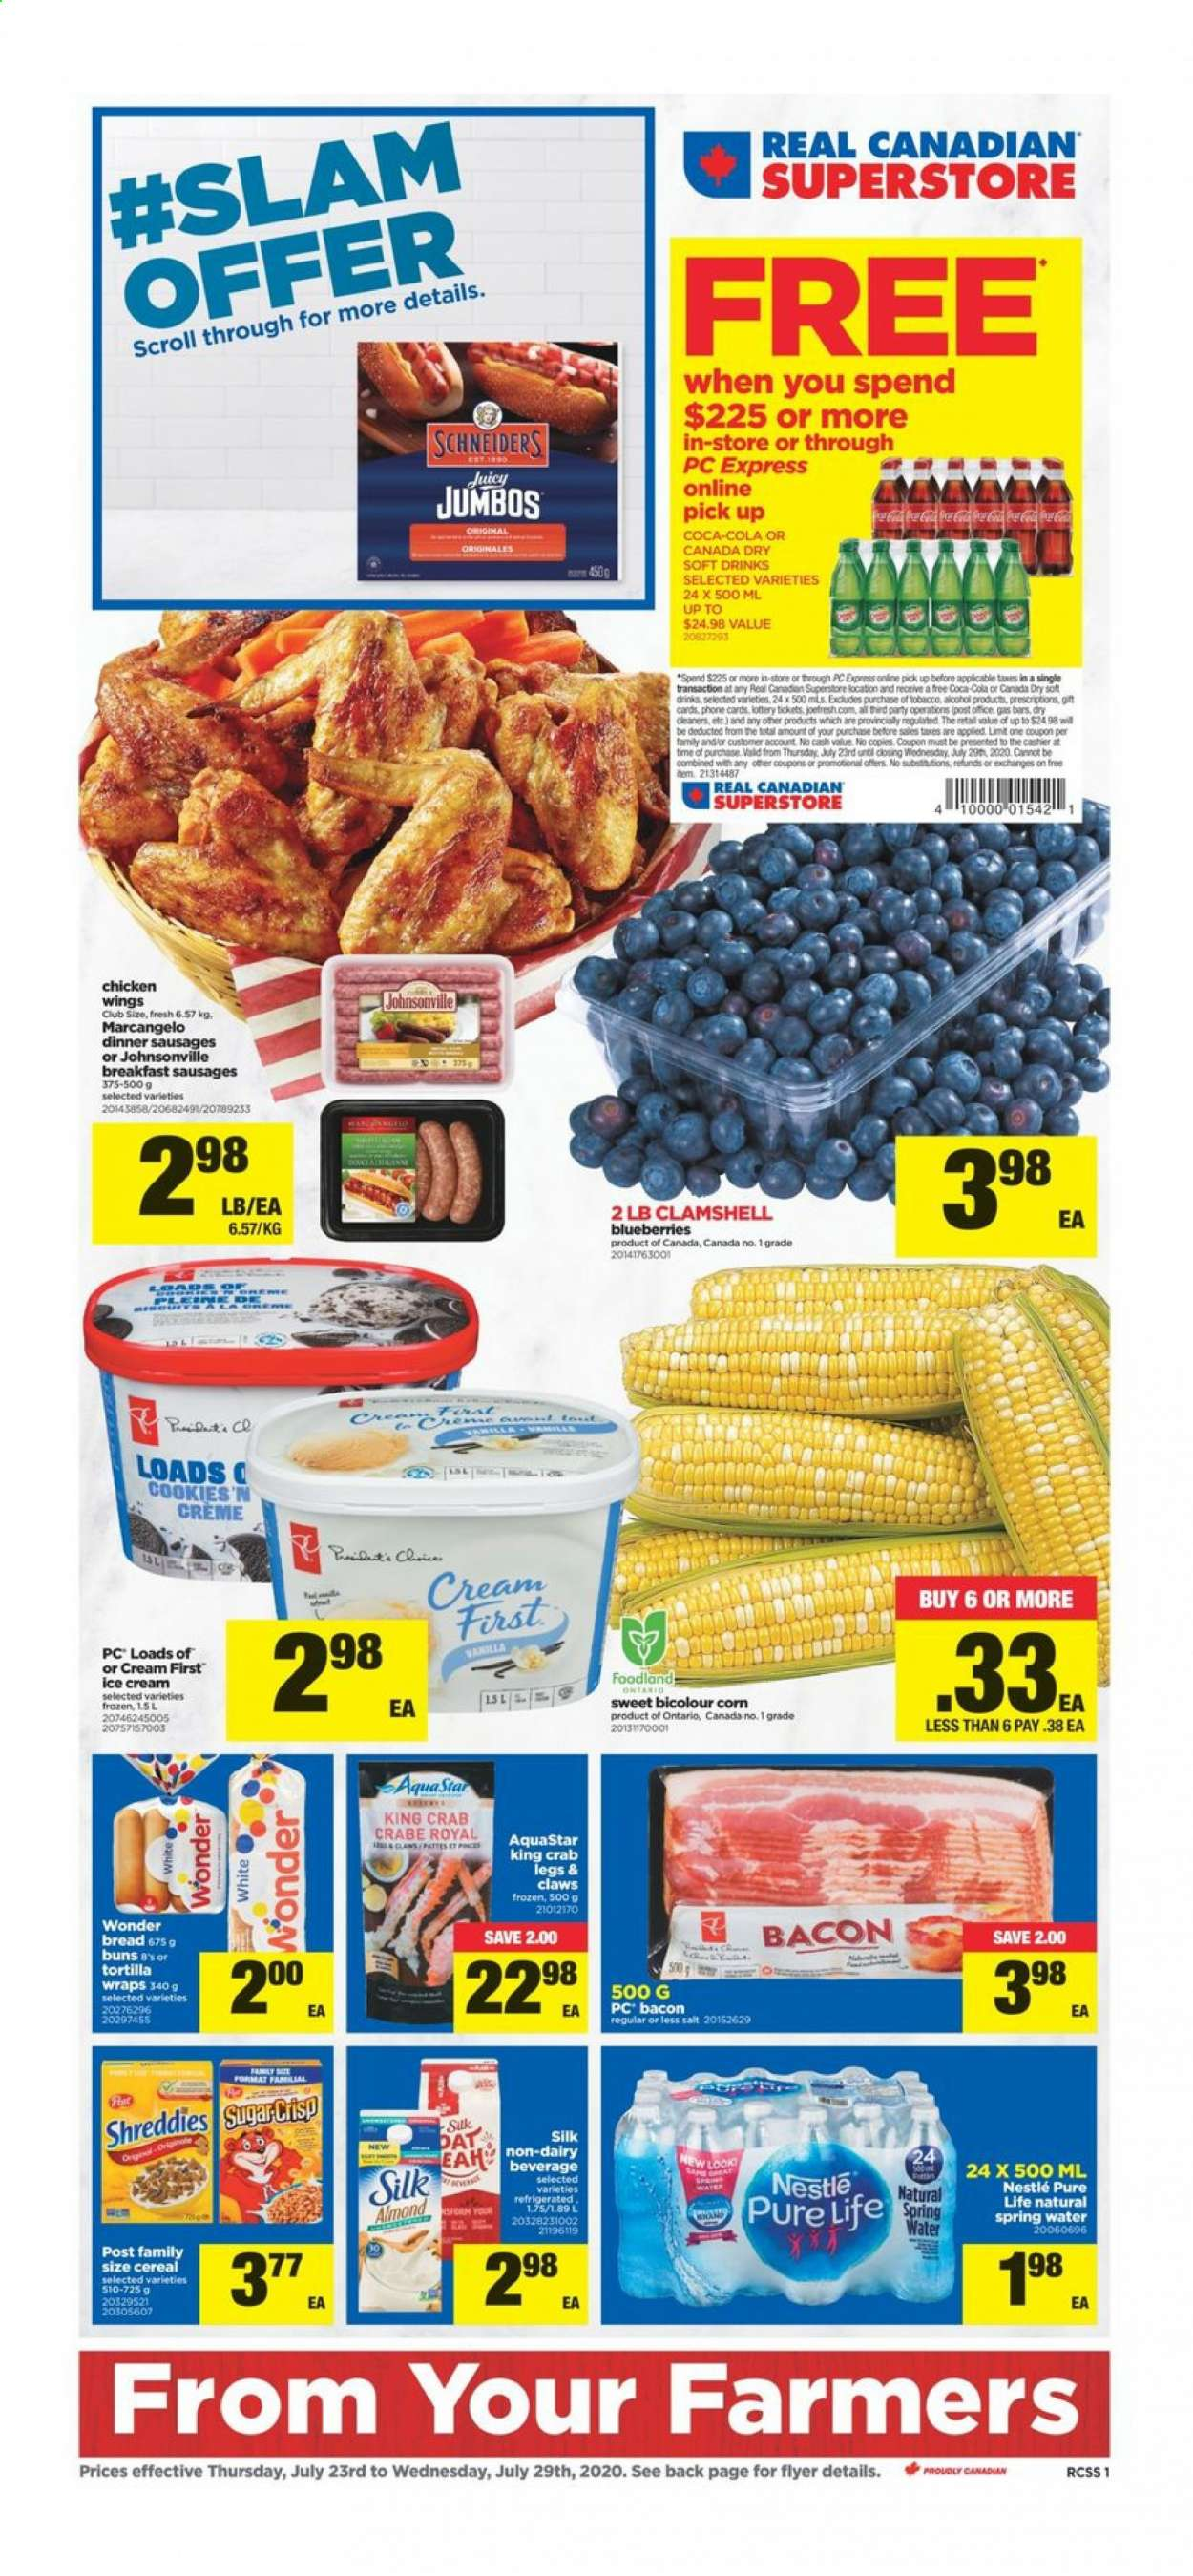 Real Canadian Superstore Flyer - July 23, 2020 - July 29, 2020 - Sales products - bacon, blueberries, bread, canada dry, cereals, cookies, corn, crème, nestlé, sausages, scroll, spring water, sugar, wrap, ice cream, king crab, king crab legs, chicken, chicken wings, cereal, salt, crab legs, crabe, tortilla. Page 1.